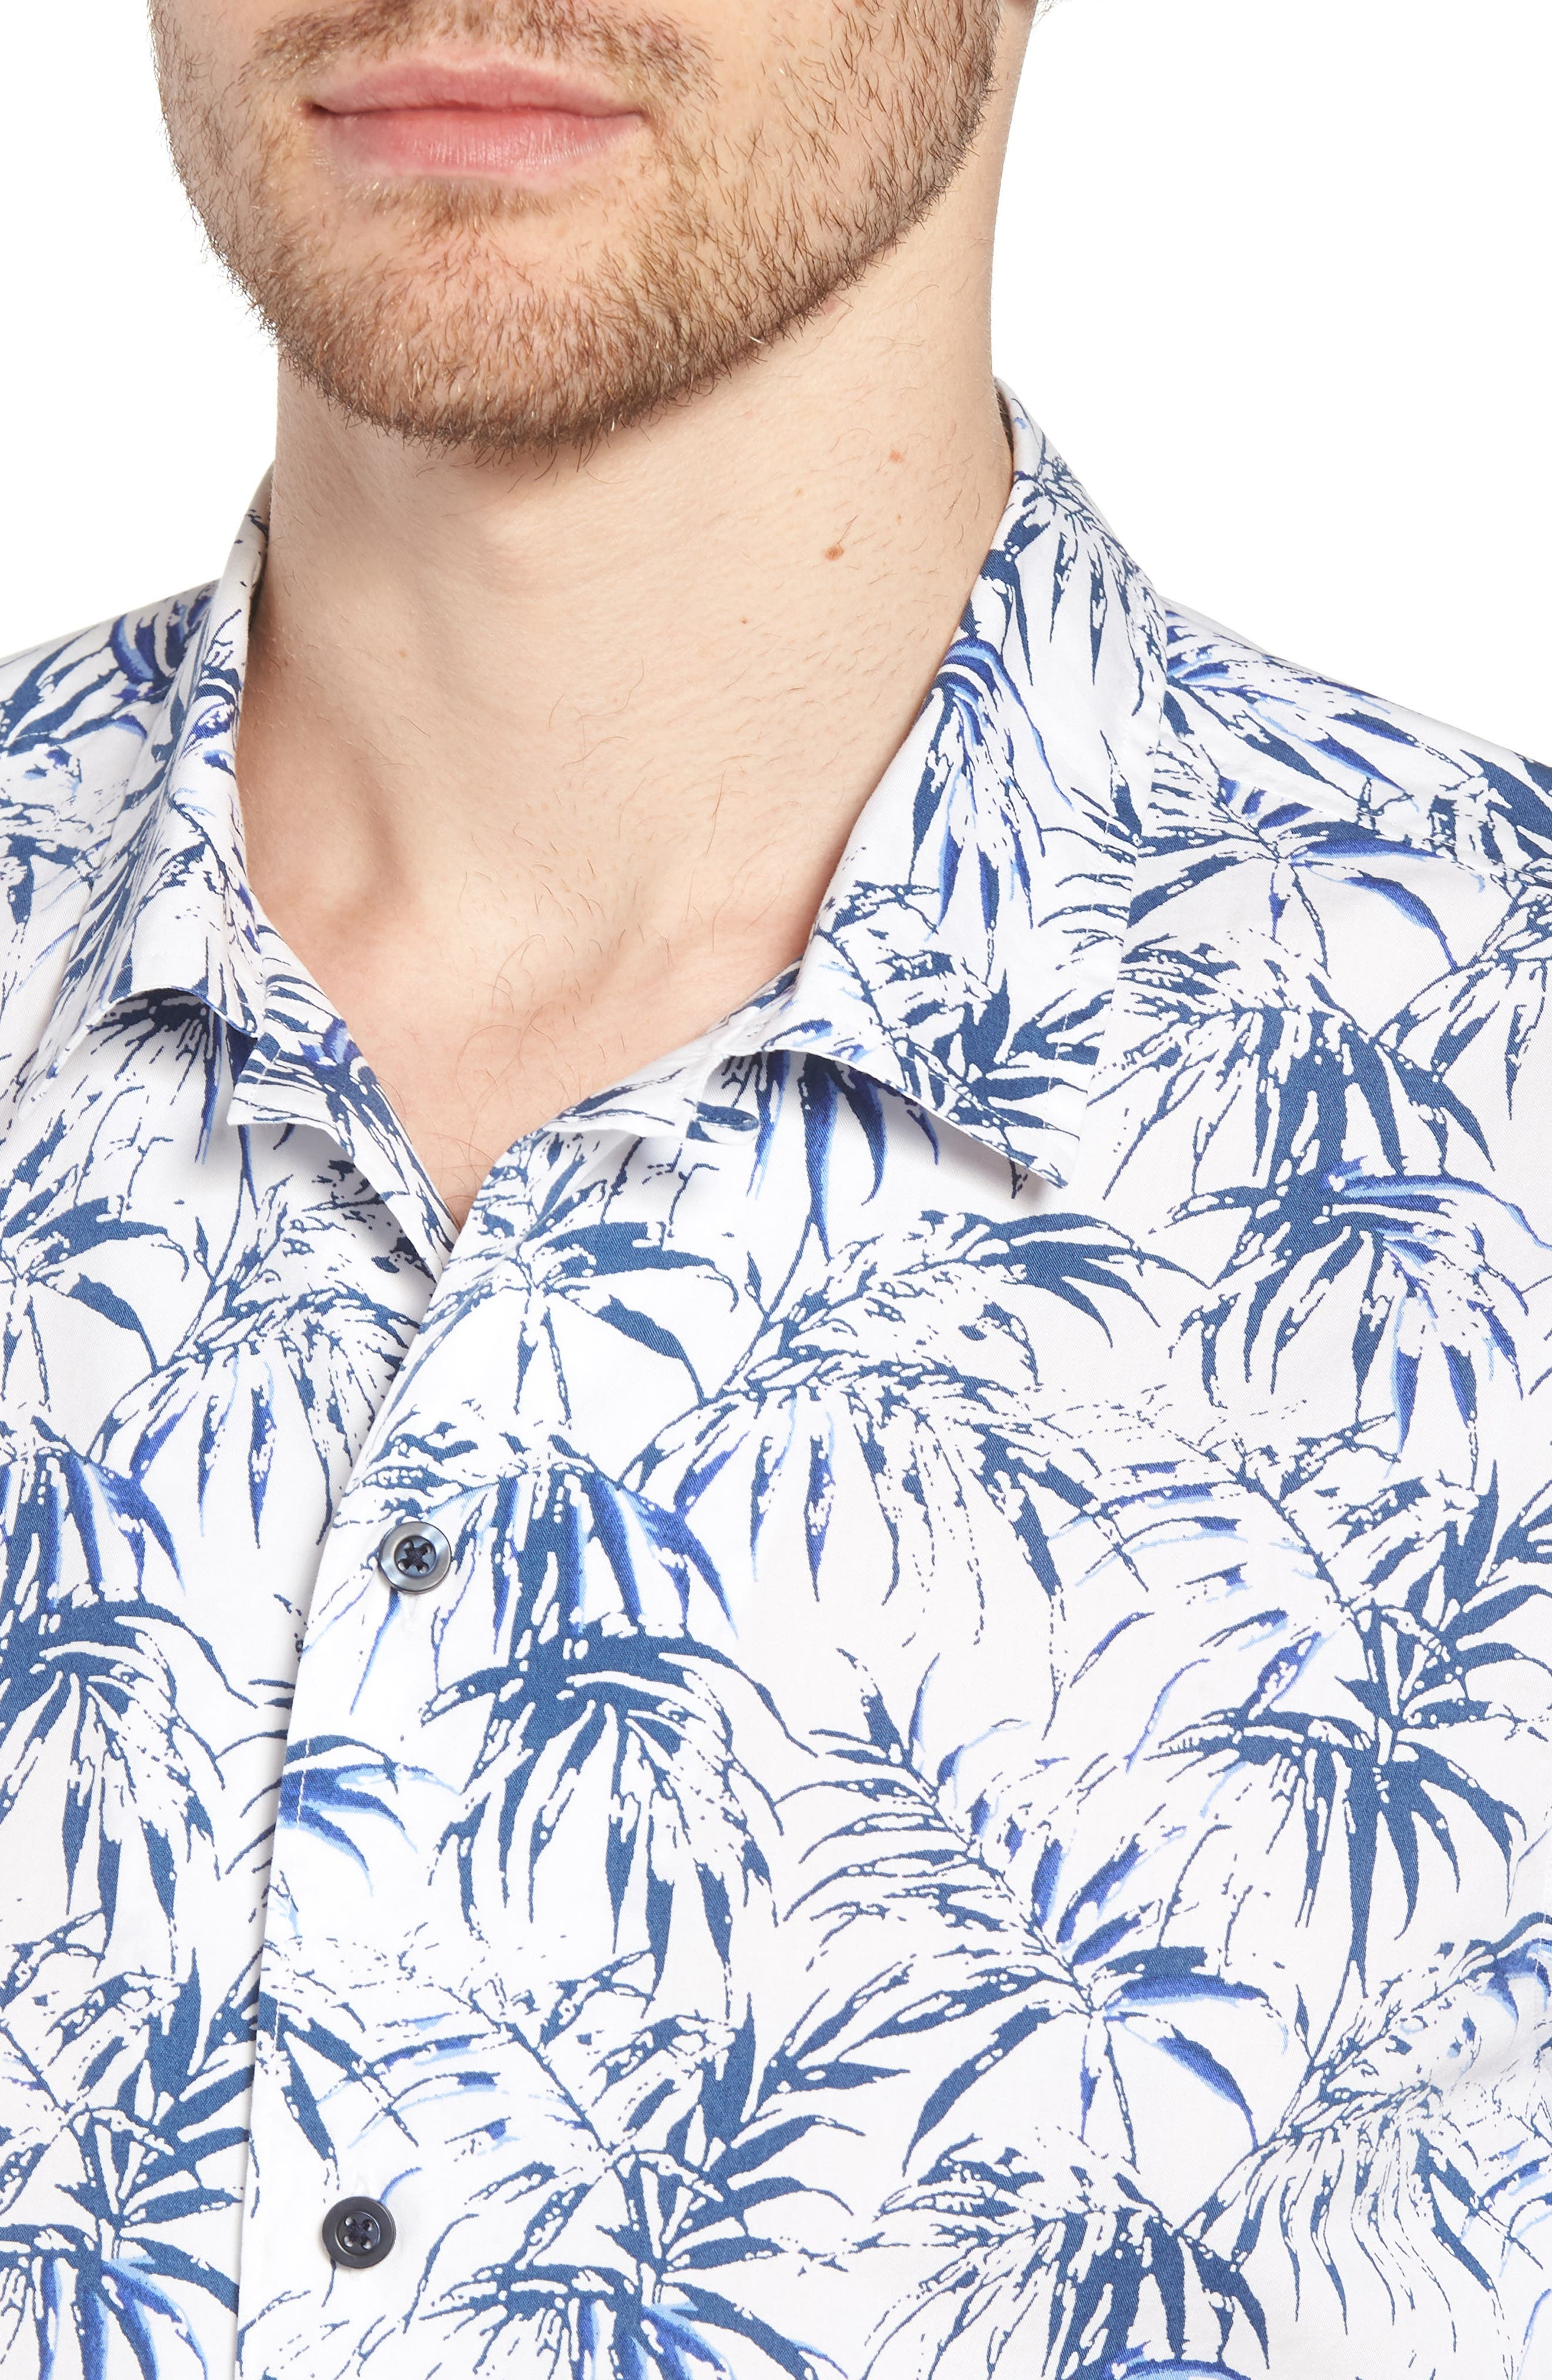 Trim Fit Palm Print Camp Shirt,                             Alternate thumbnail 2, color,                             White Navy Stamped Palms